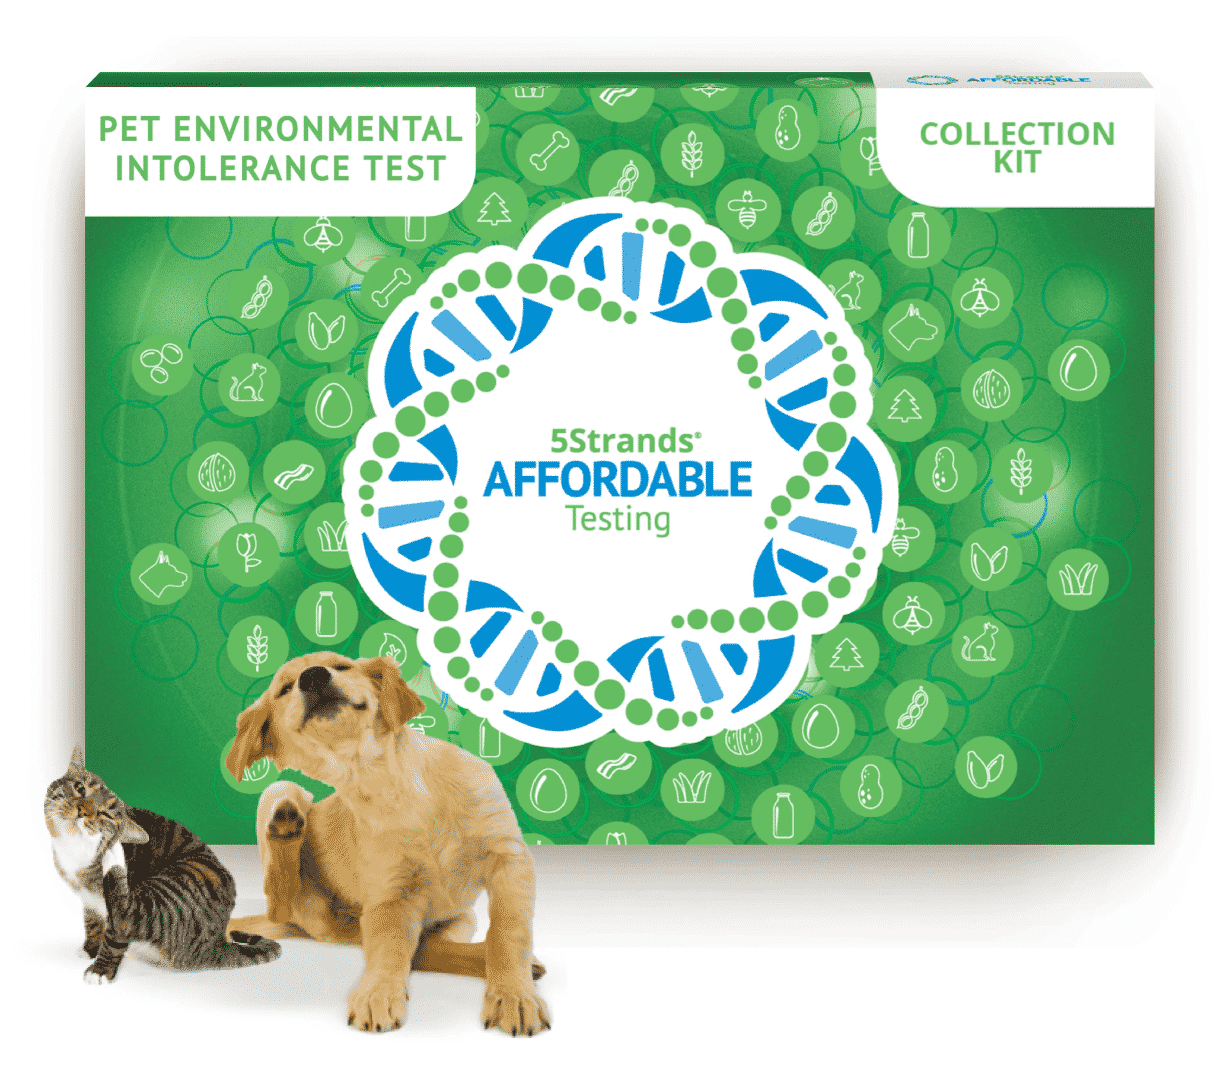 environmental pet test by 5strands